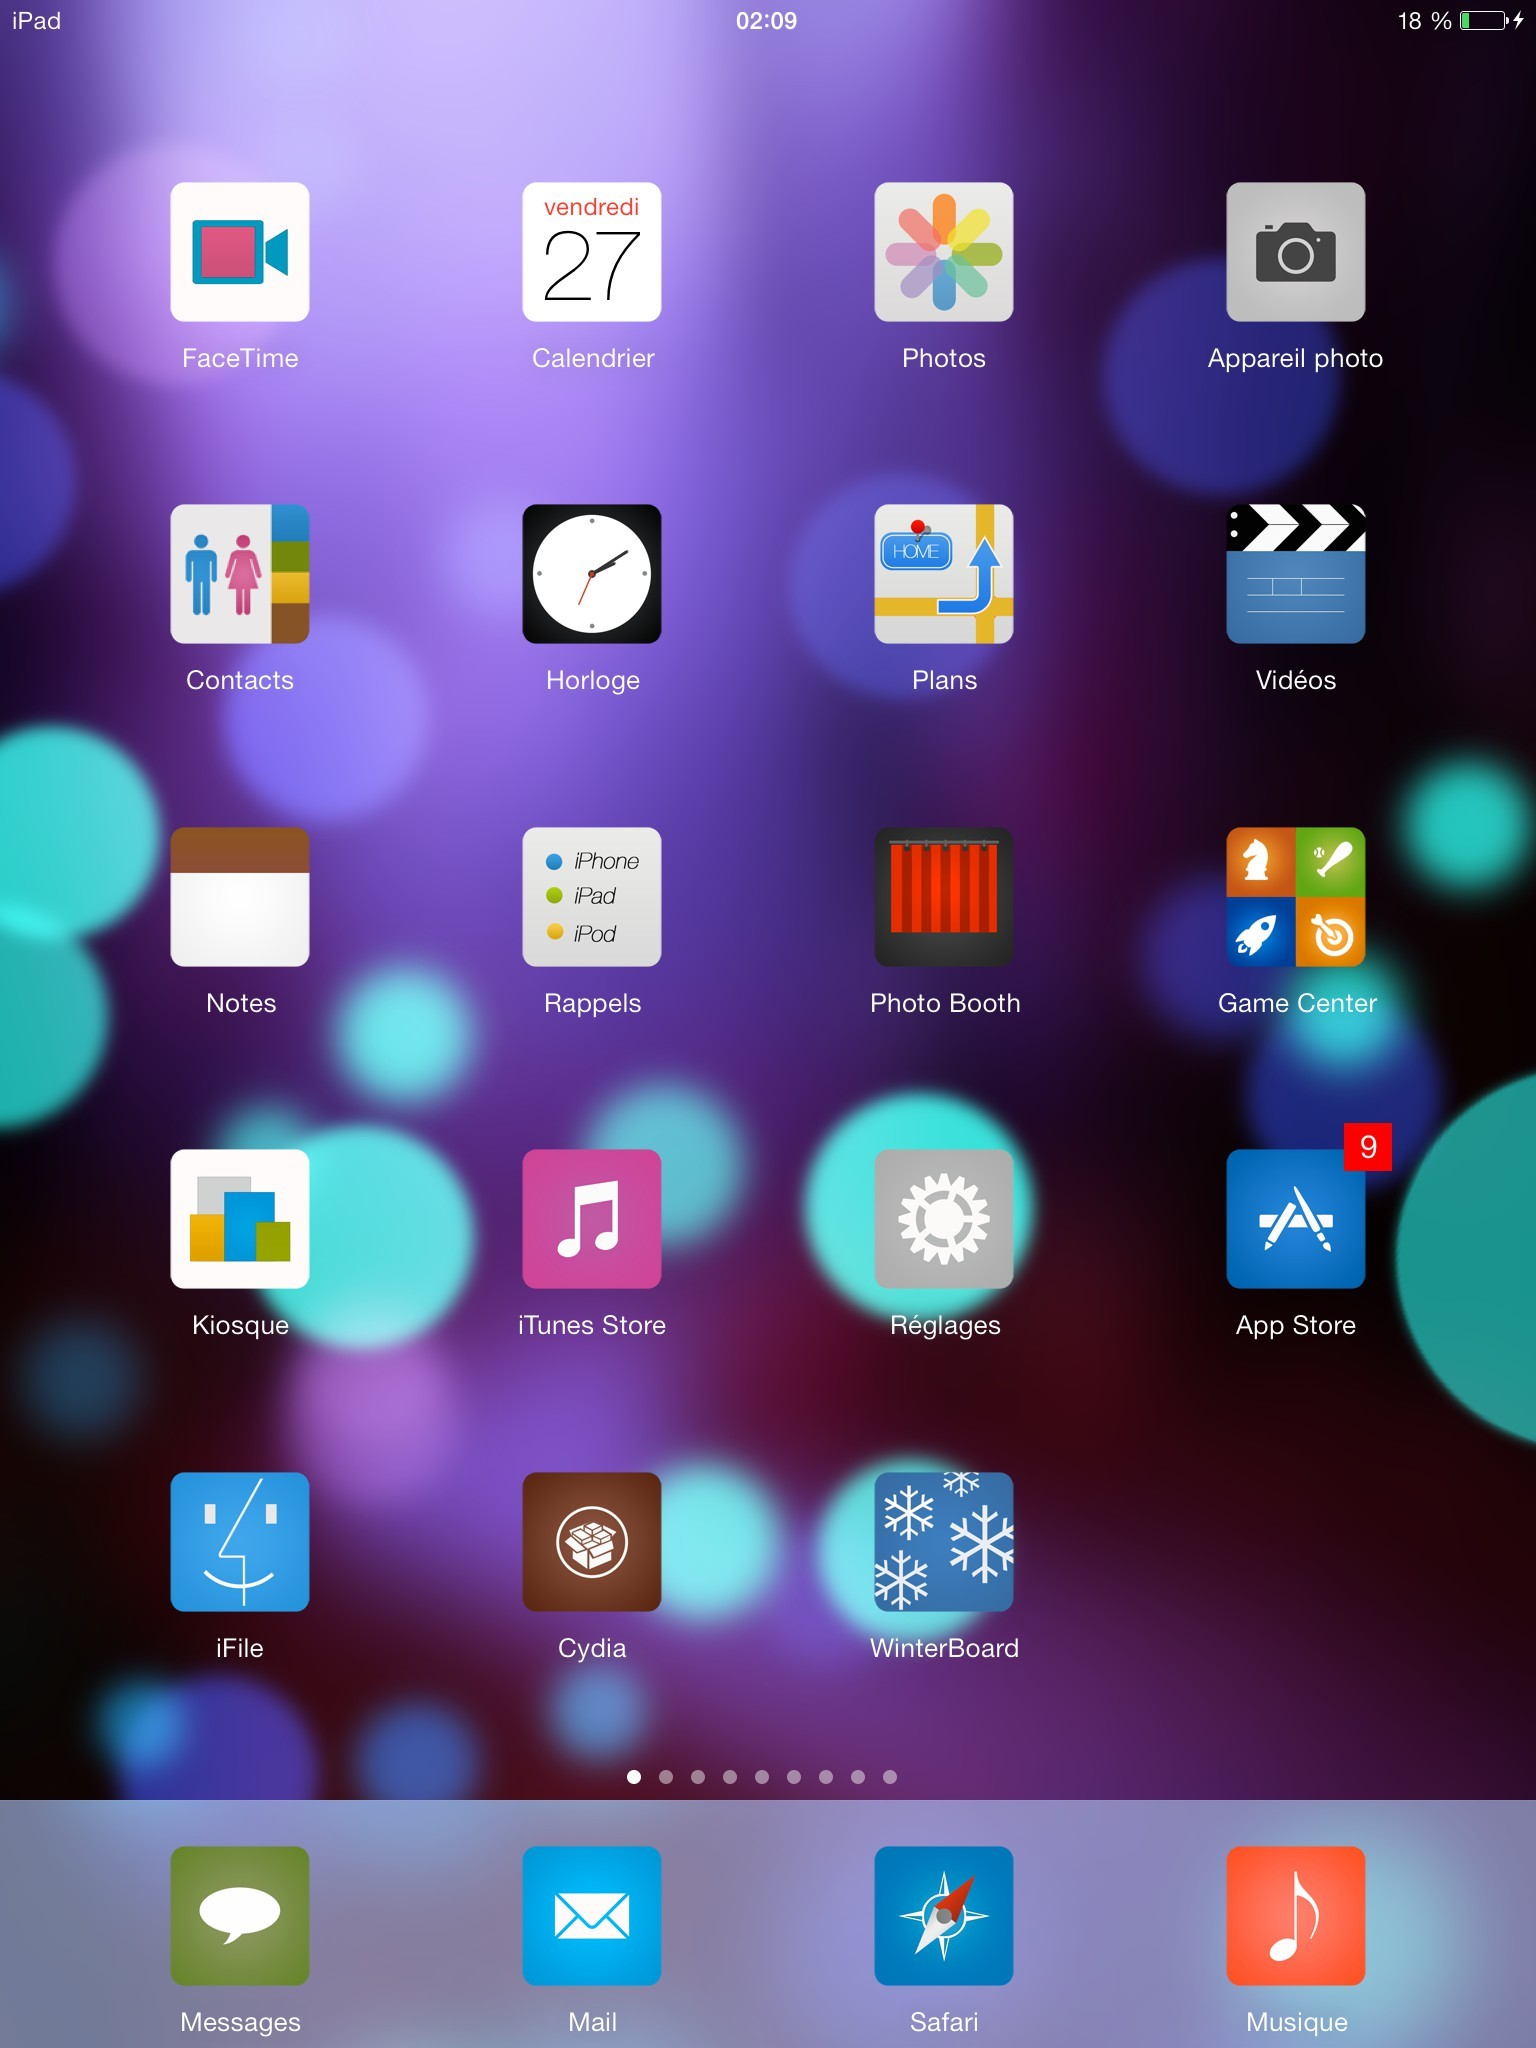 1536x2048 08 iPad HD Dynamic Wallpaper for iOS 7 - 1.1 - Themes